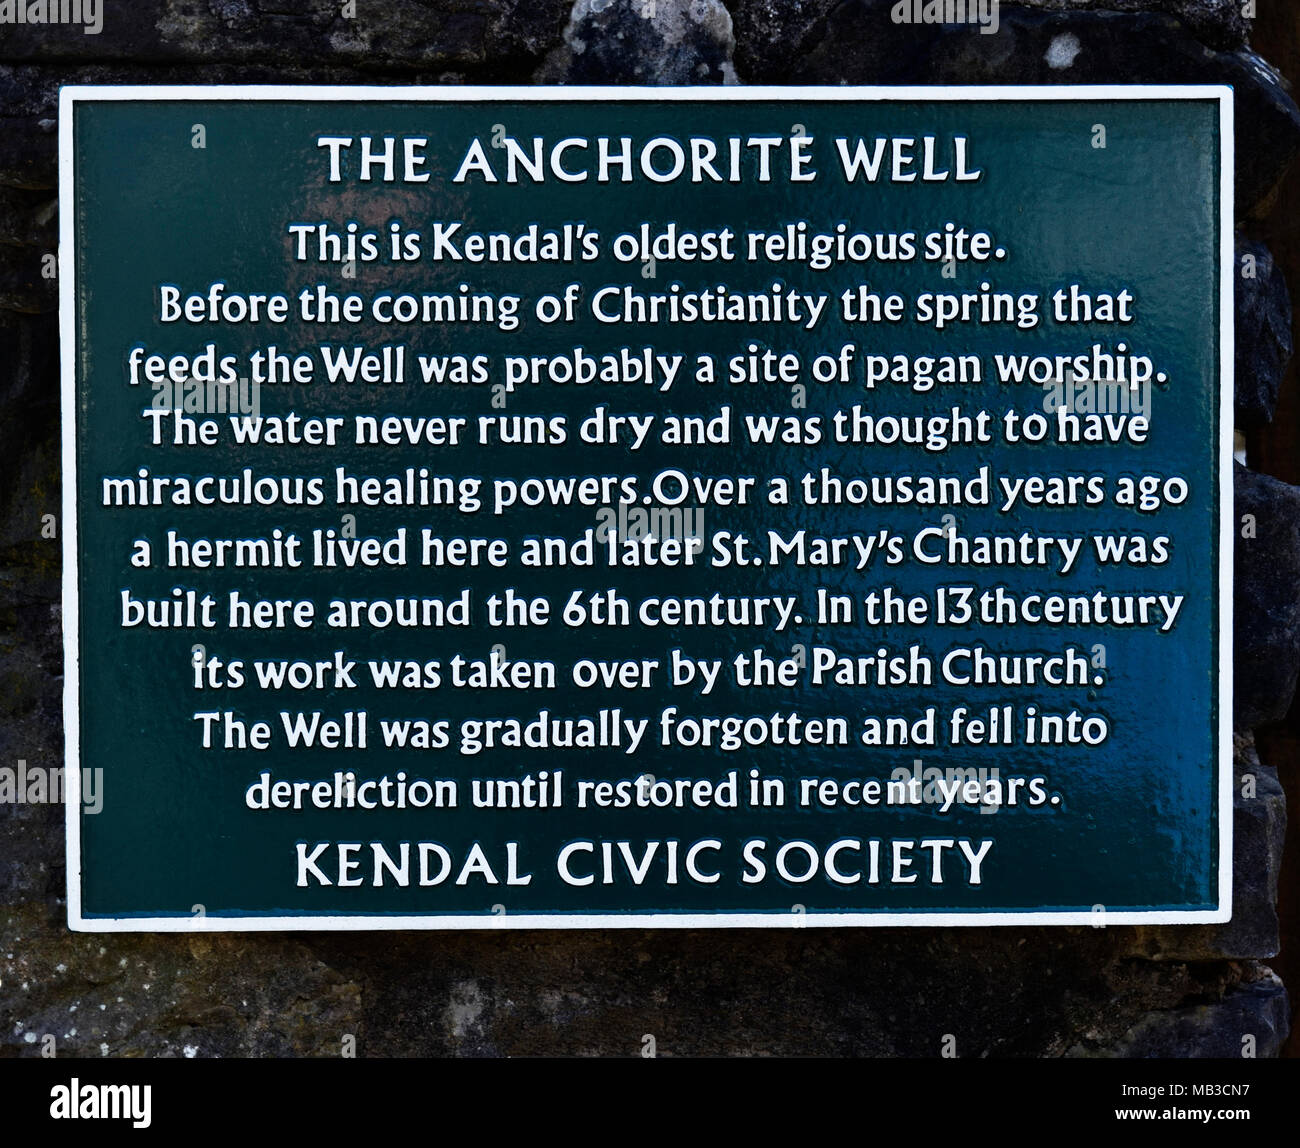 The Anchorite Well. Descriptive plaque, Kendal Civic Society. Anchorite Fields, Kendal, Cumbria, England, United Kingdom, Europe. - Stock Image